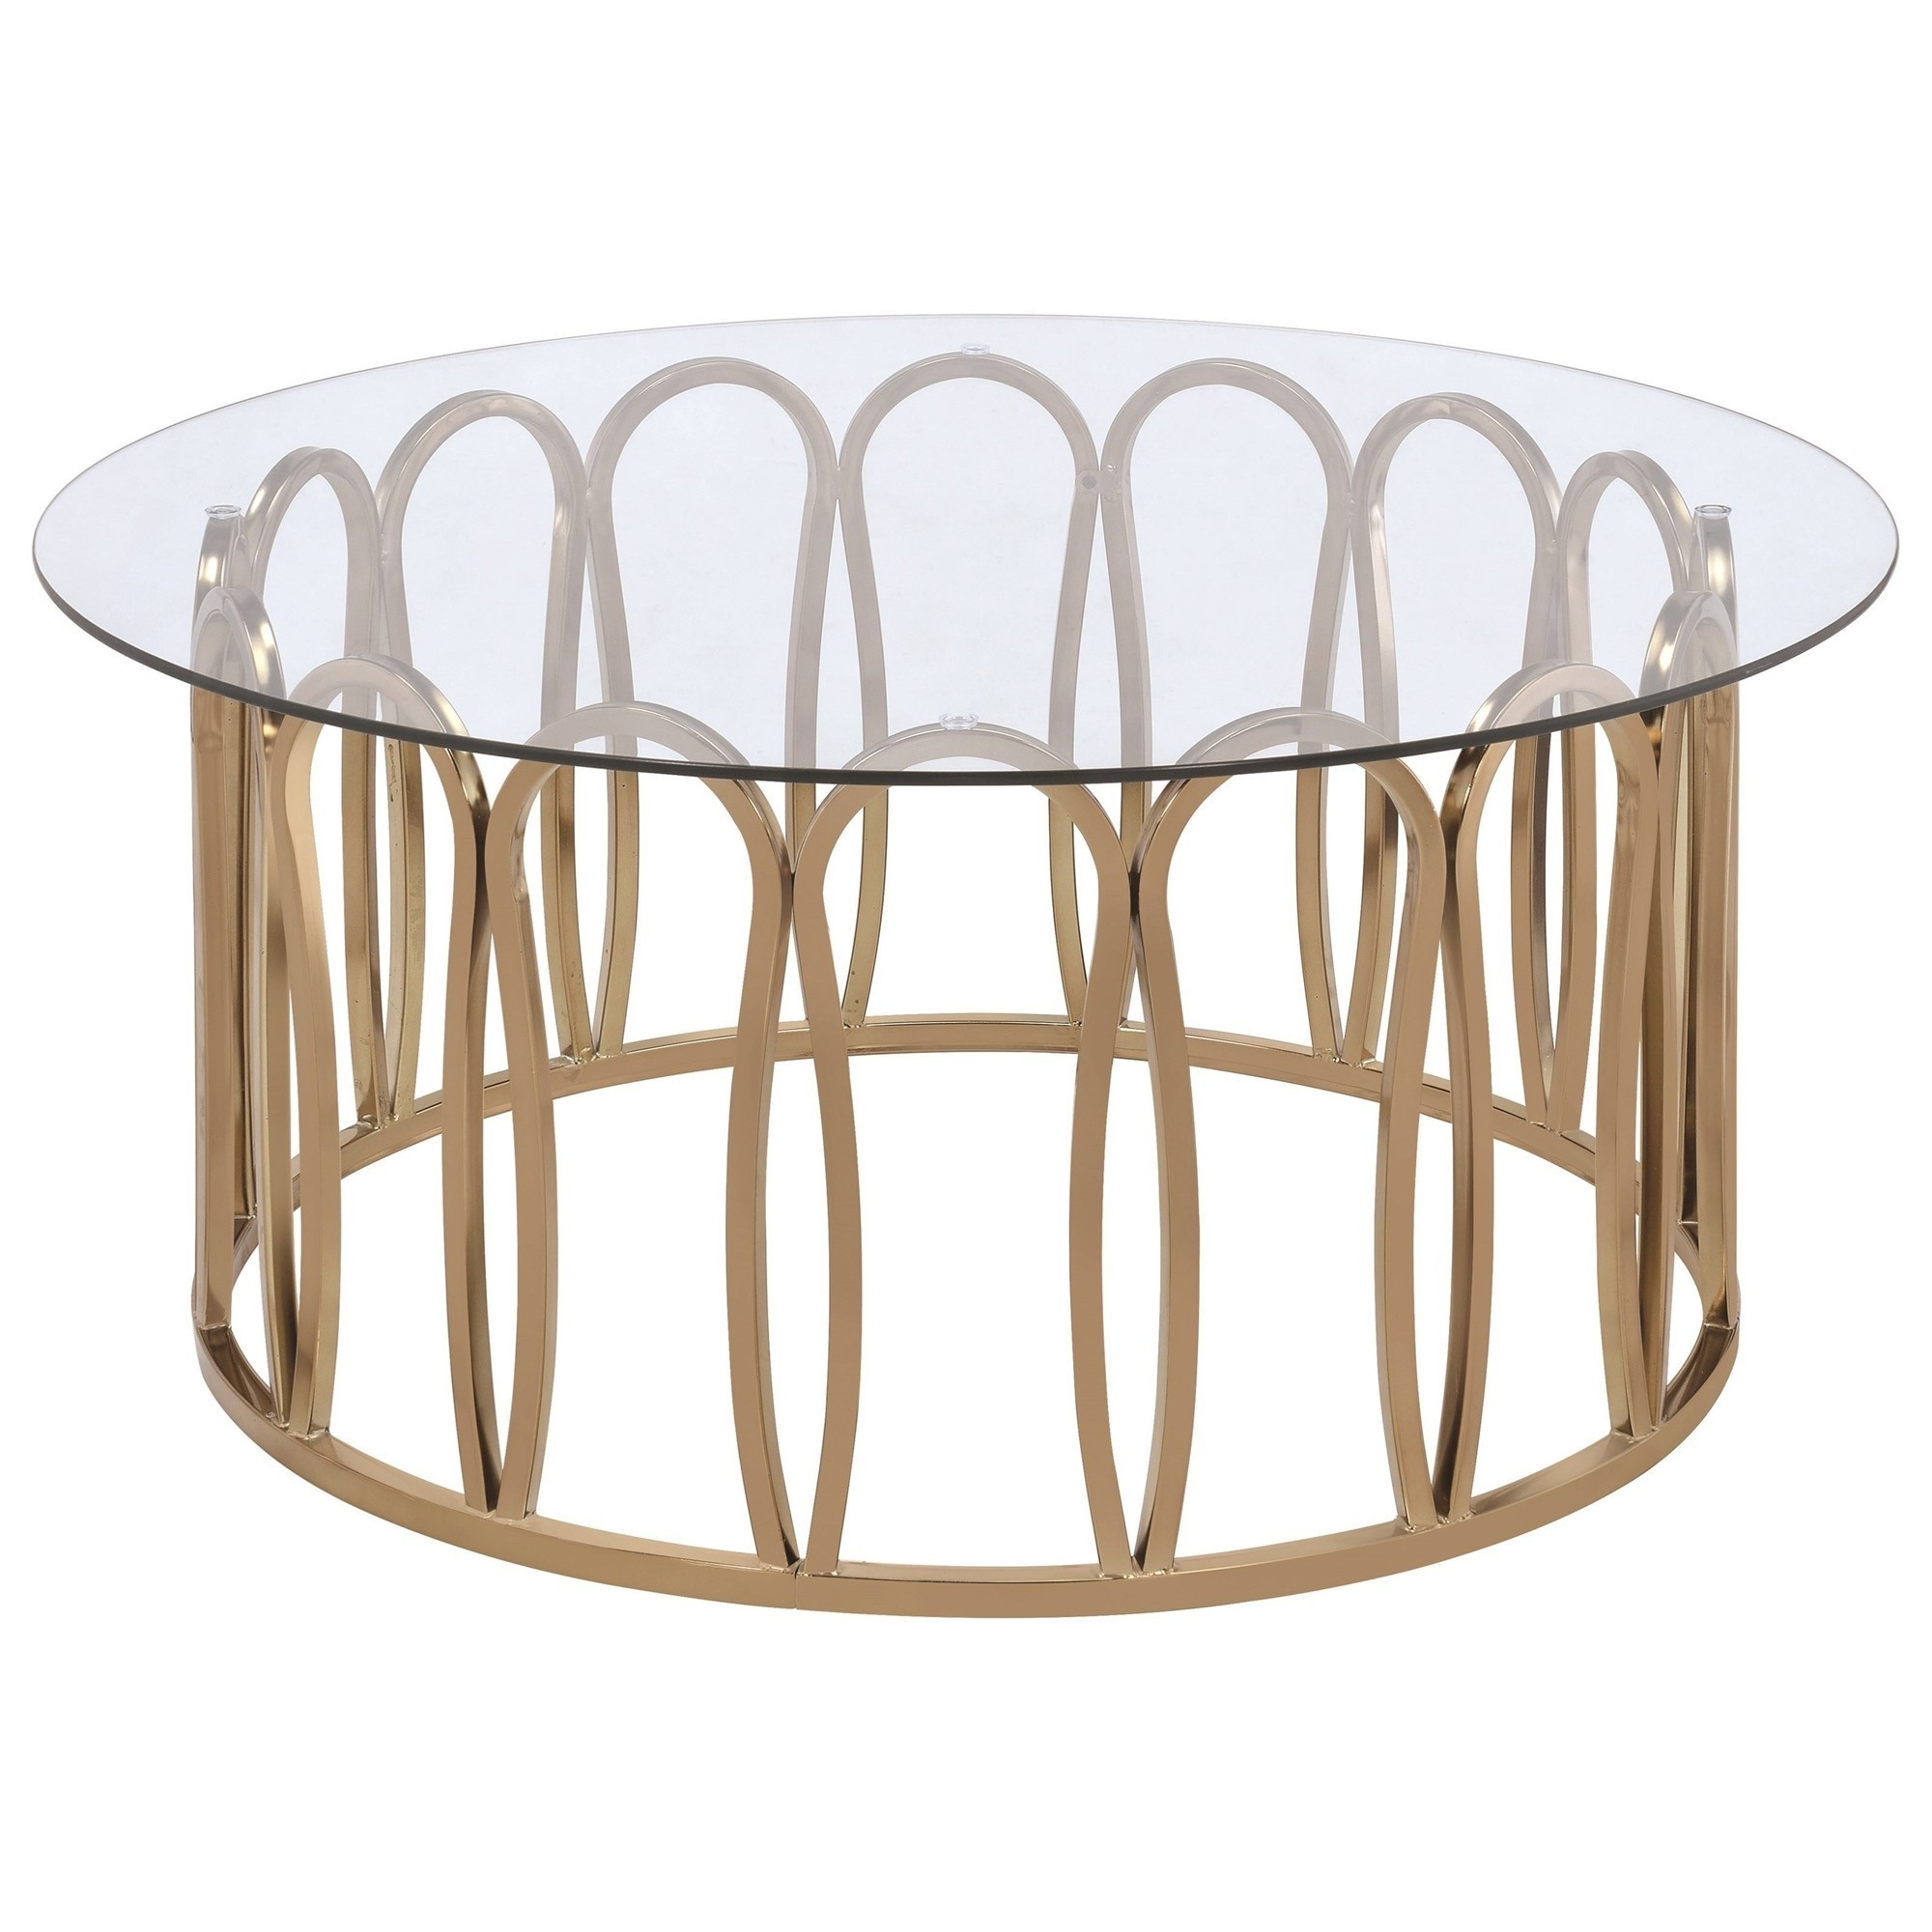 11 Lovely Metal Coffee Table Sets Pertaining To Most Recent Potomac Adjustable Coffee Tables (View 2 of 20)